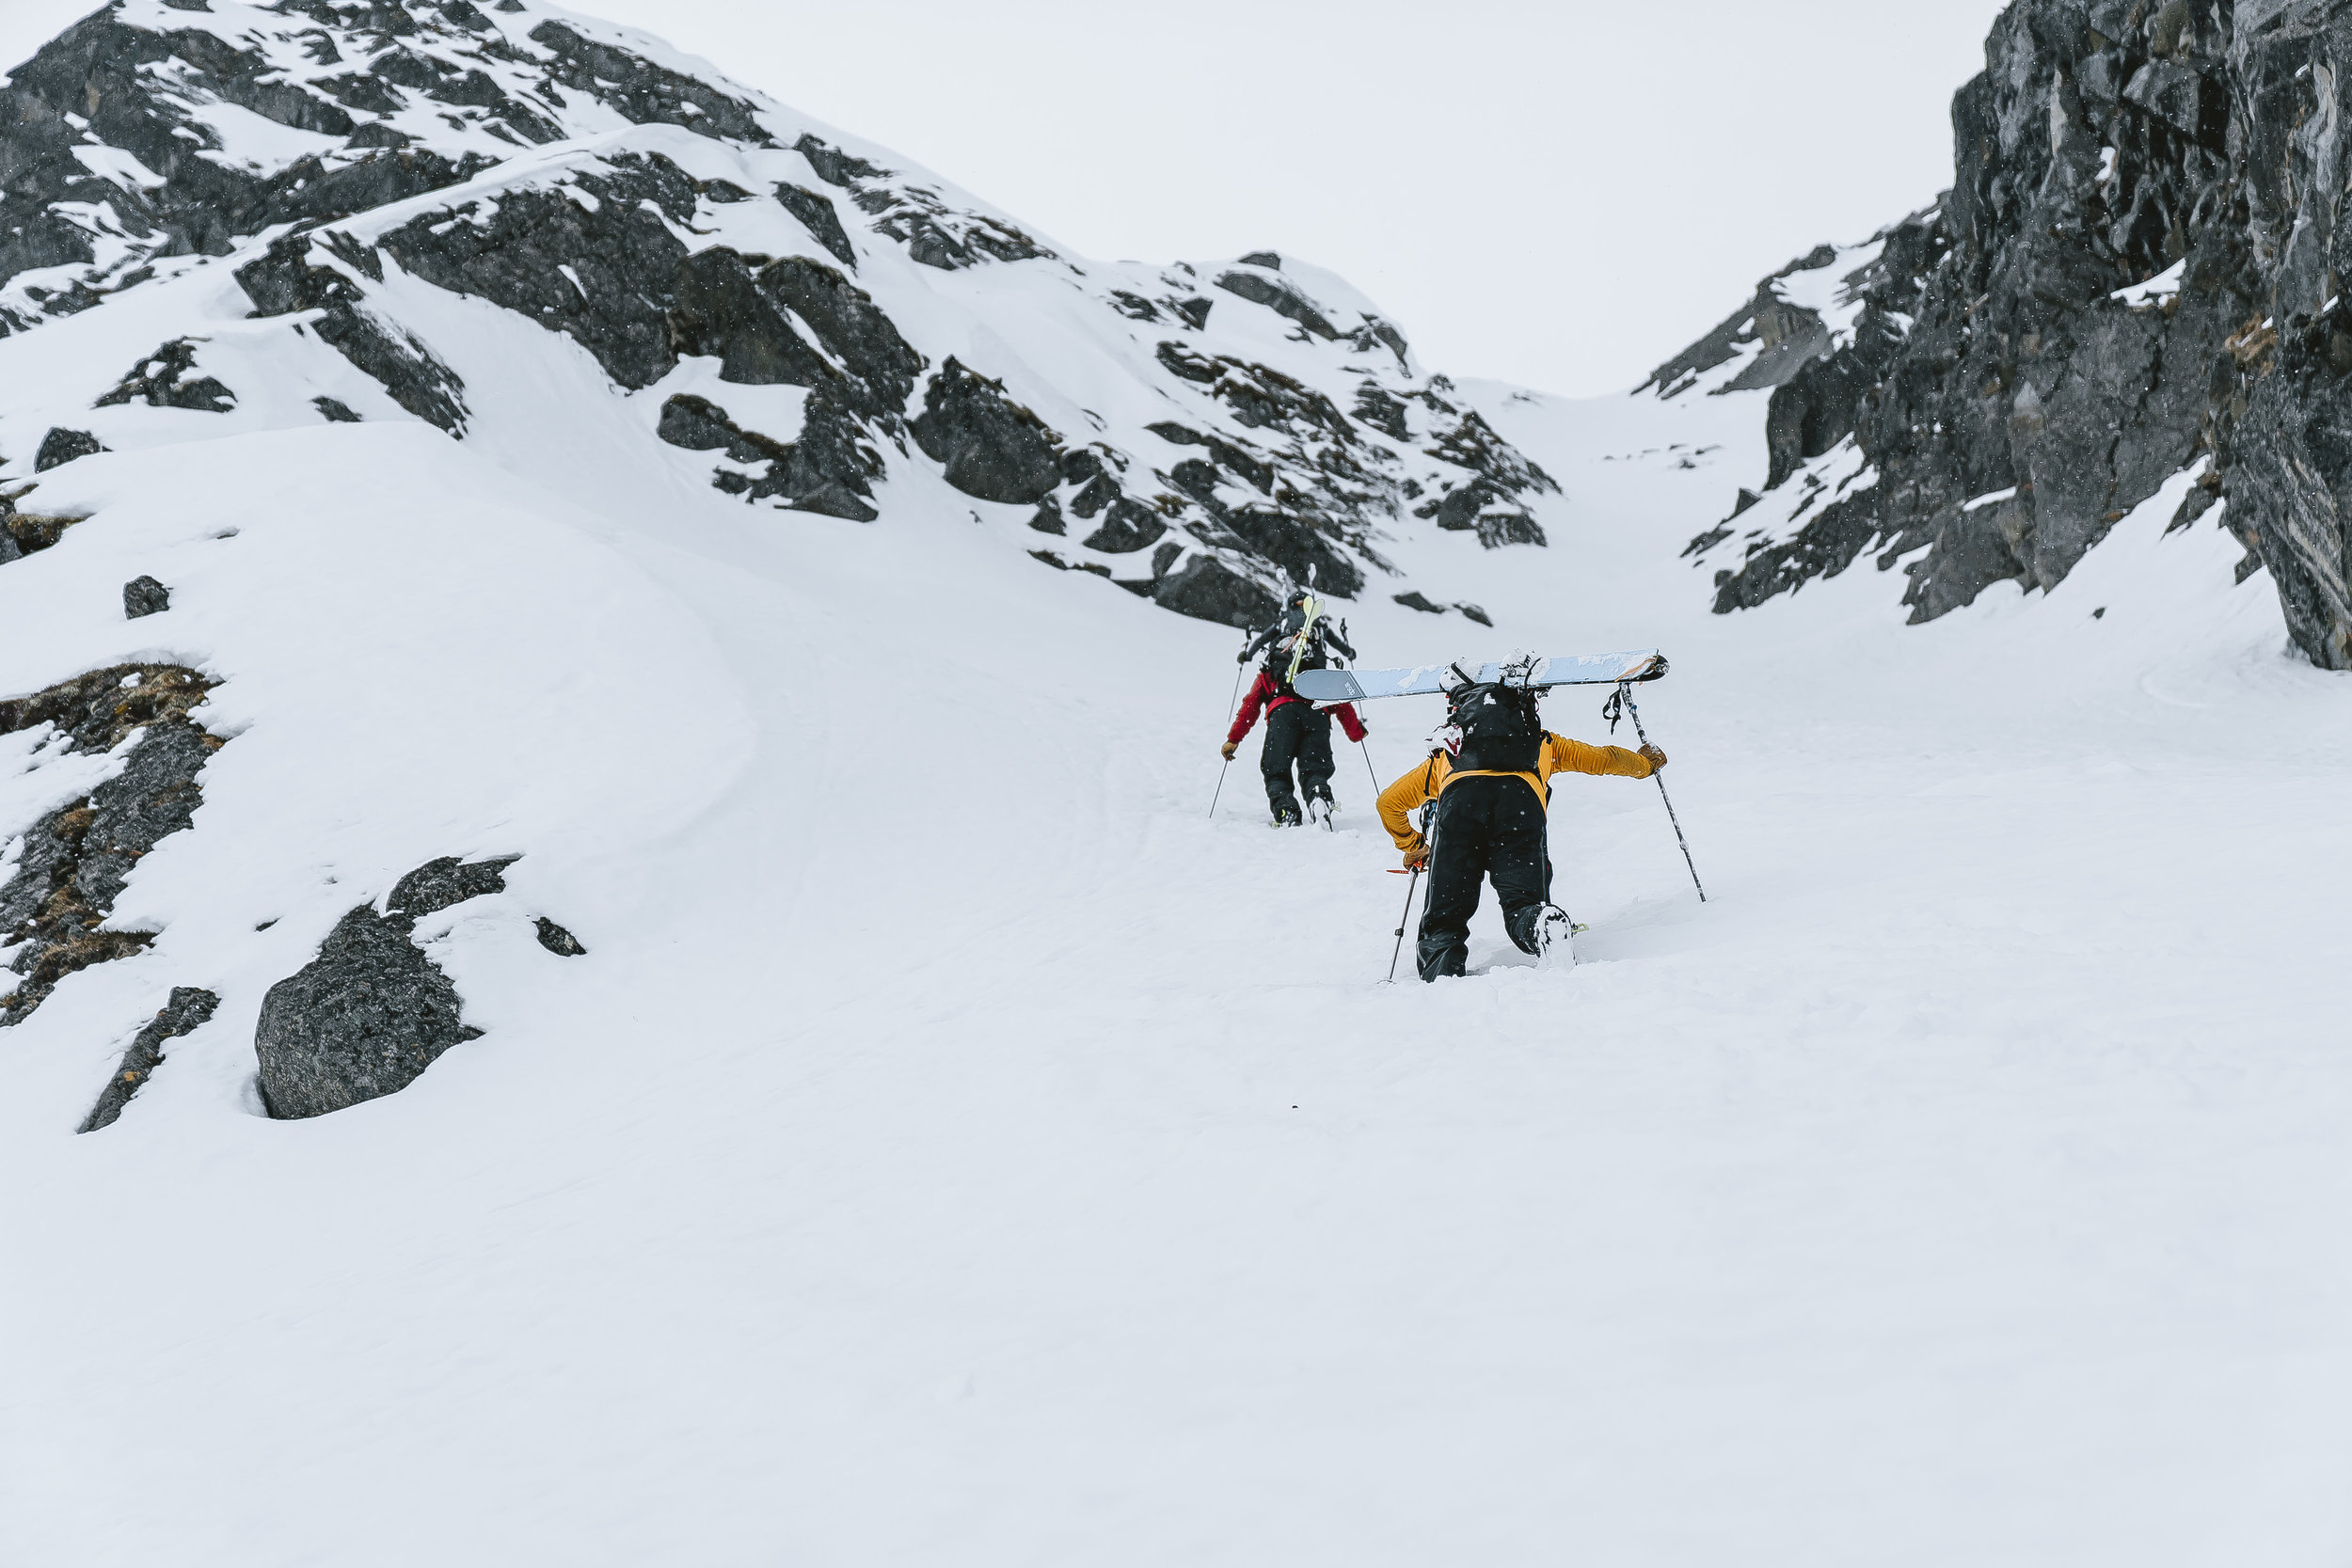 Headed up Lost Couloir - Hatcher Pass.